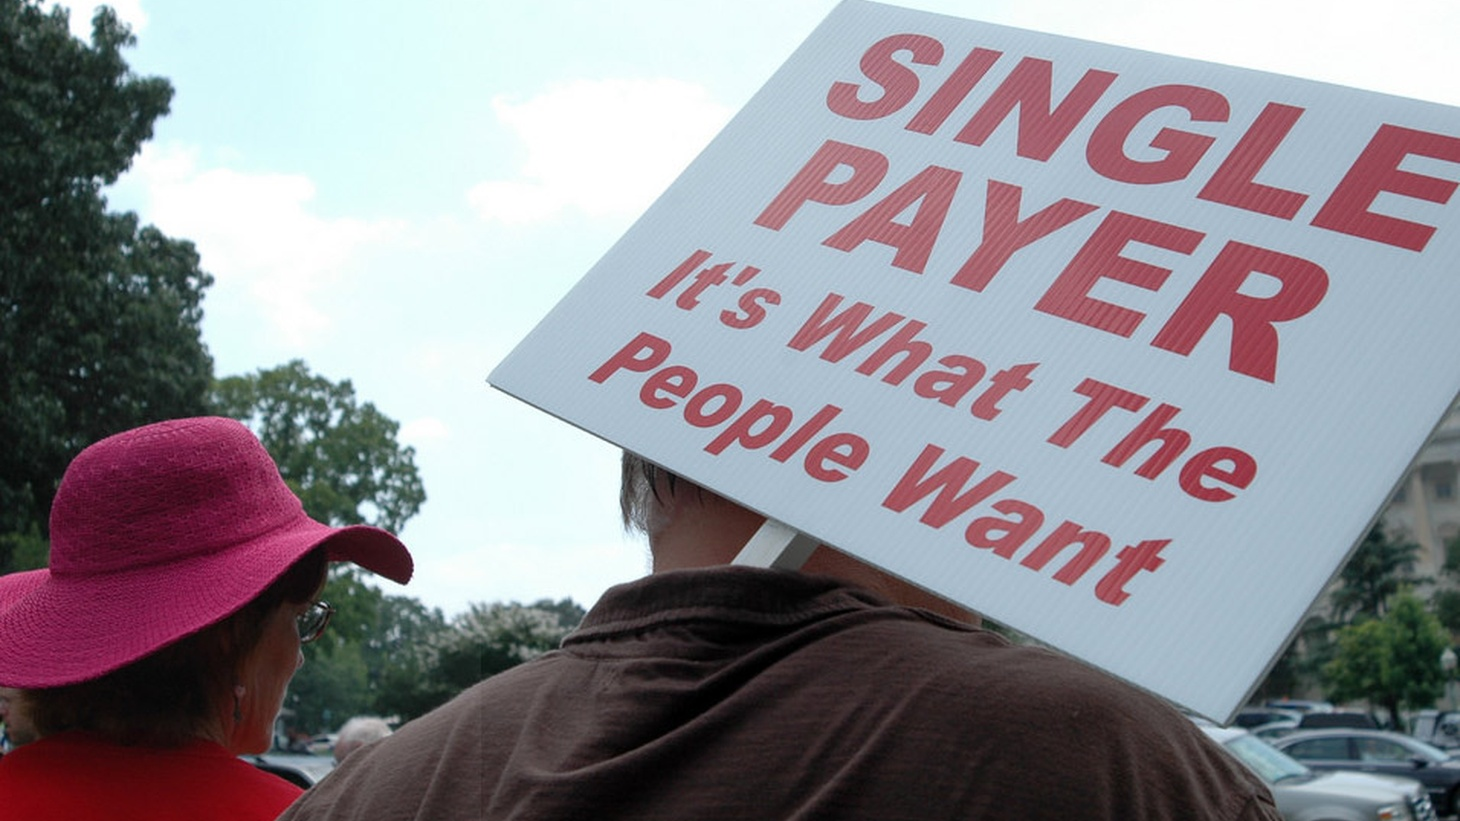 Is a single-payer healthcare system right for California? A lot of the state's leading politicians are touting single-payer, but Zocalo columnist Joe Mathews says their plan lacks dollars and sense.